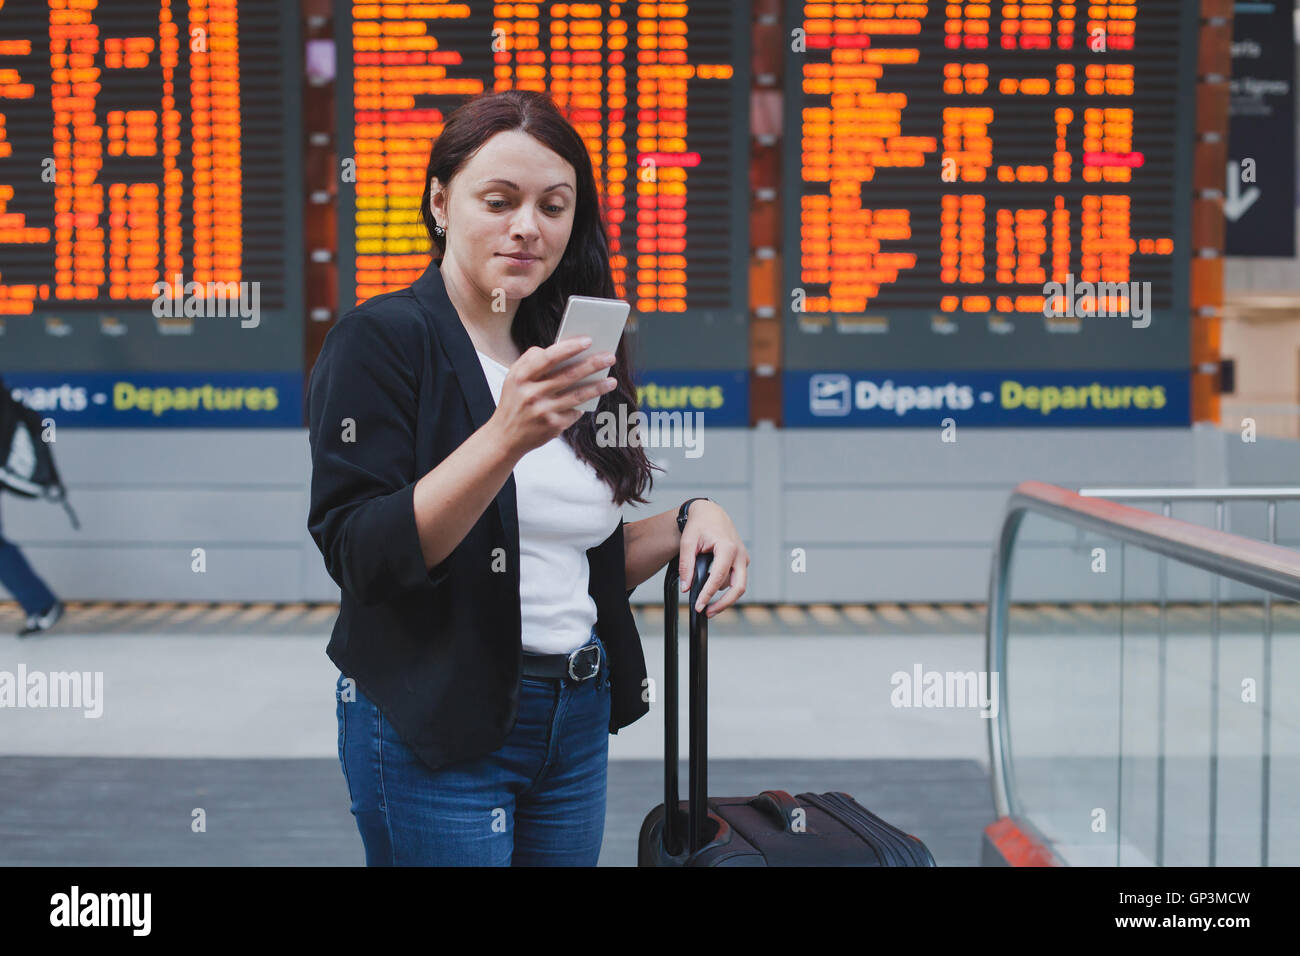 woman with smartphone in international airport checking timetable of the flight - Stock Image